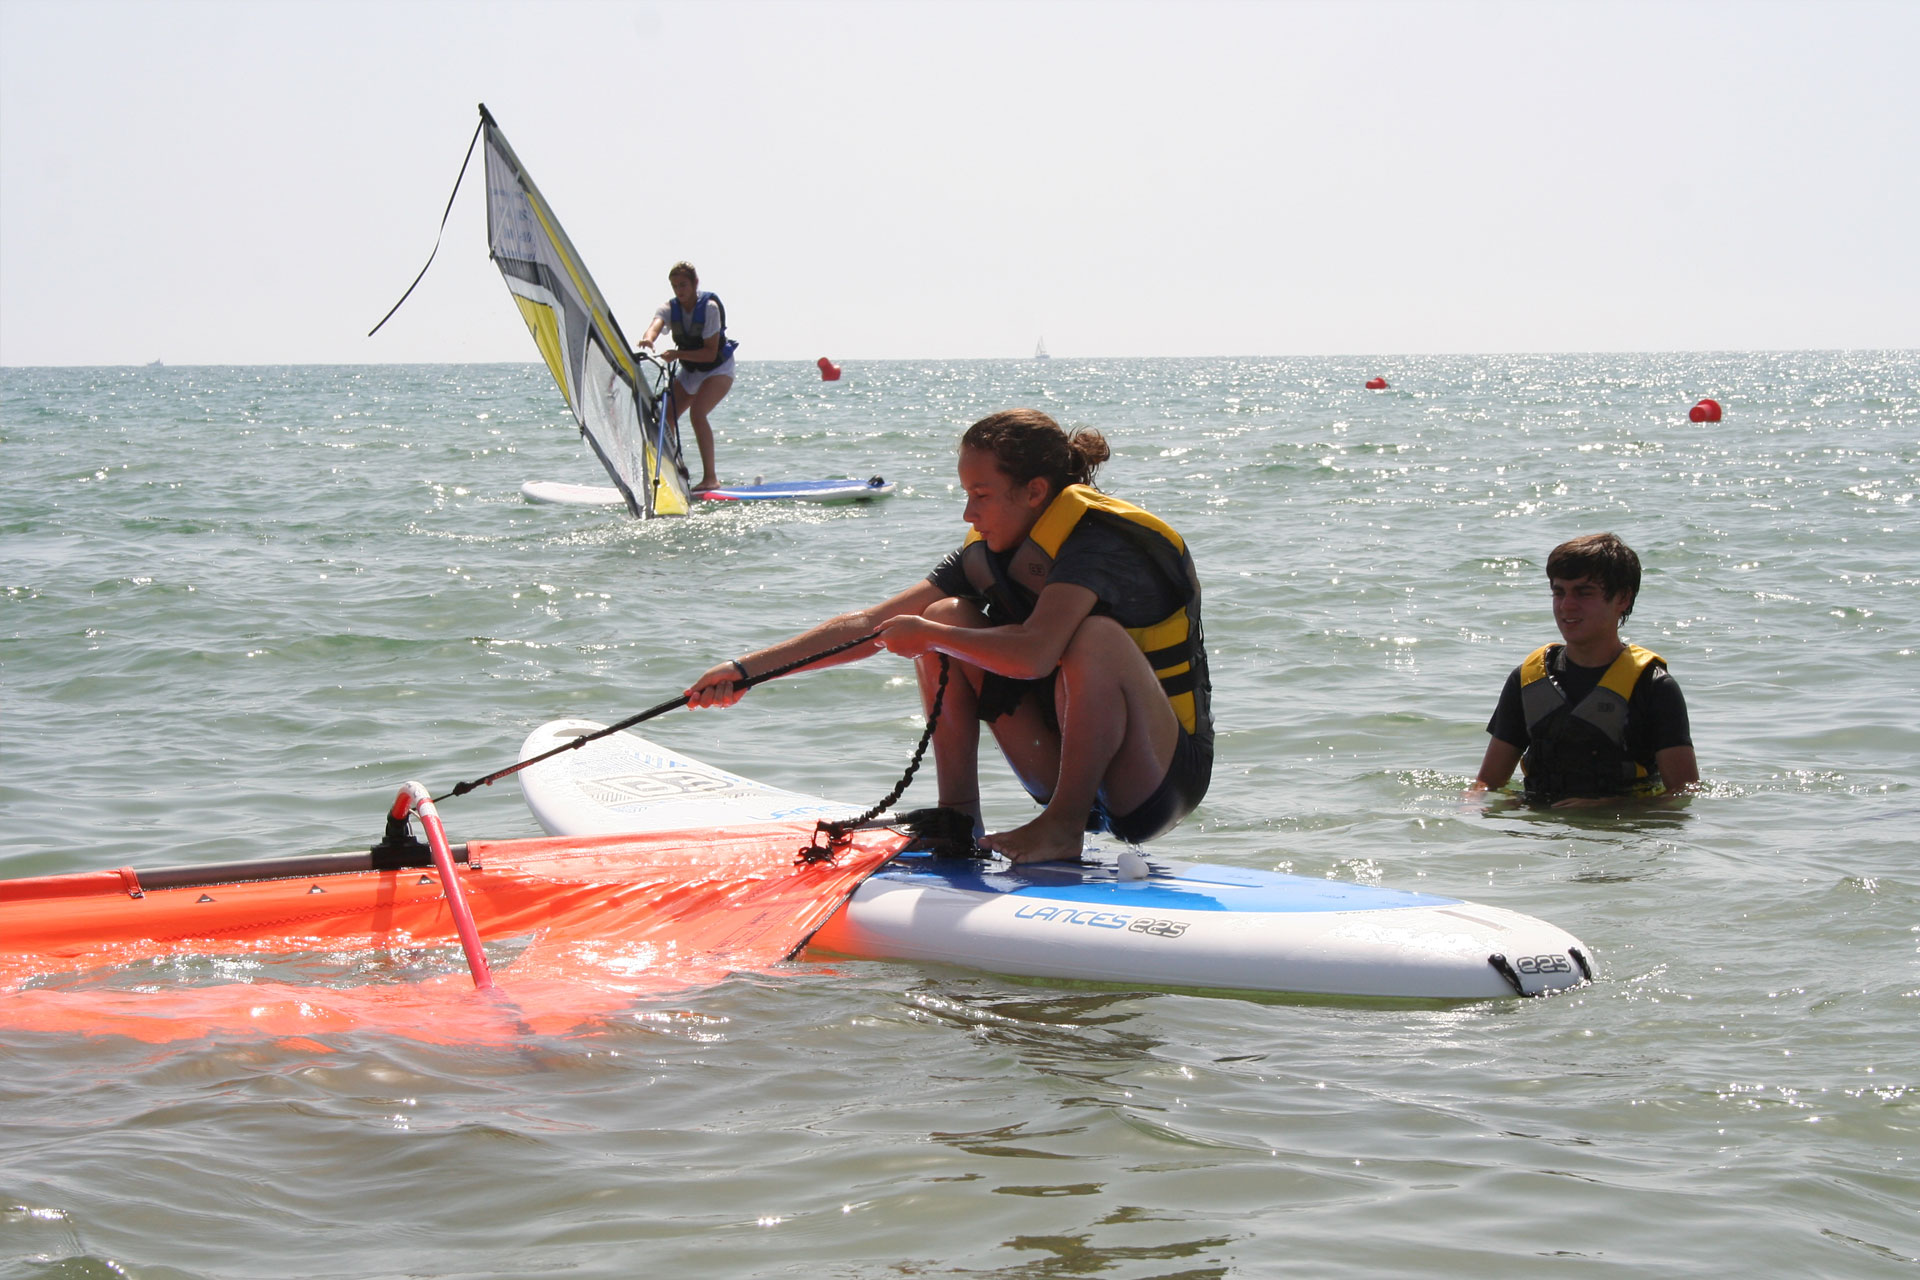 Curso de windsurf en Guardamar